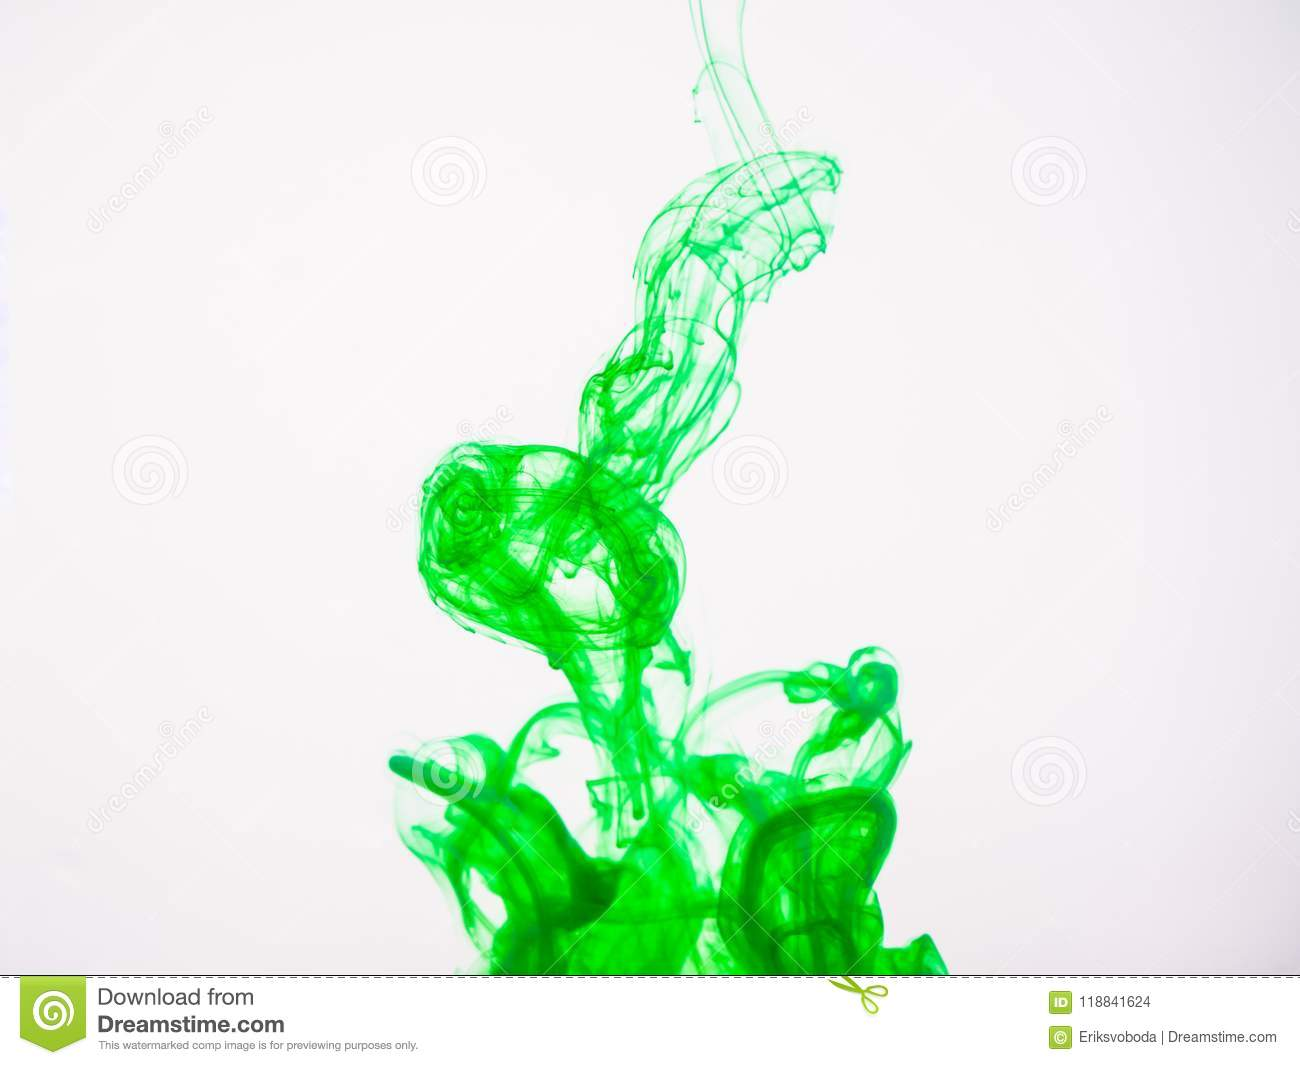 Green acrylic colour dissolving into water, close up view. Abstract green coloured background. Acrylic paint dropped